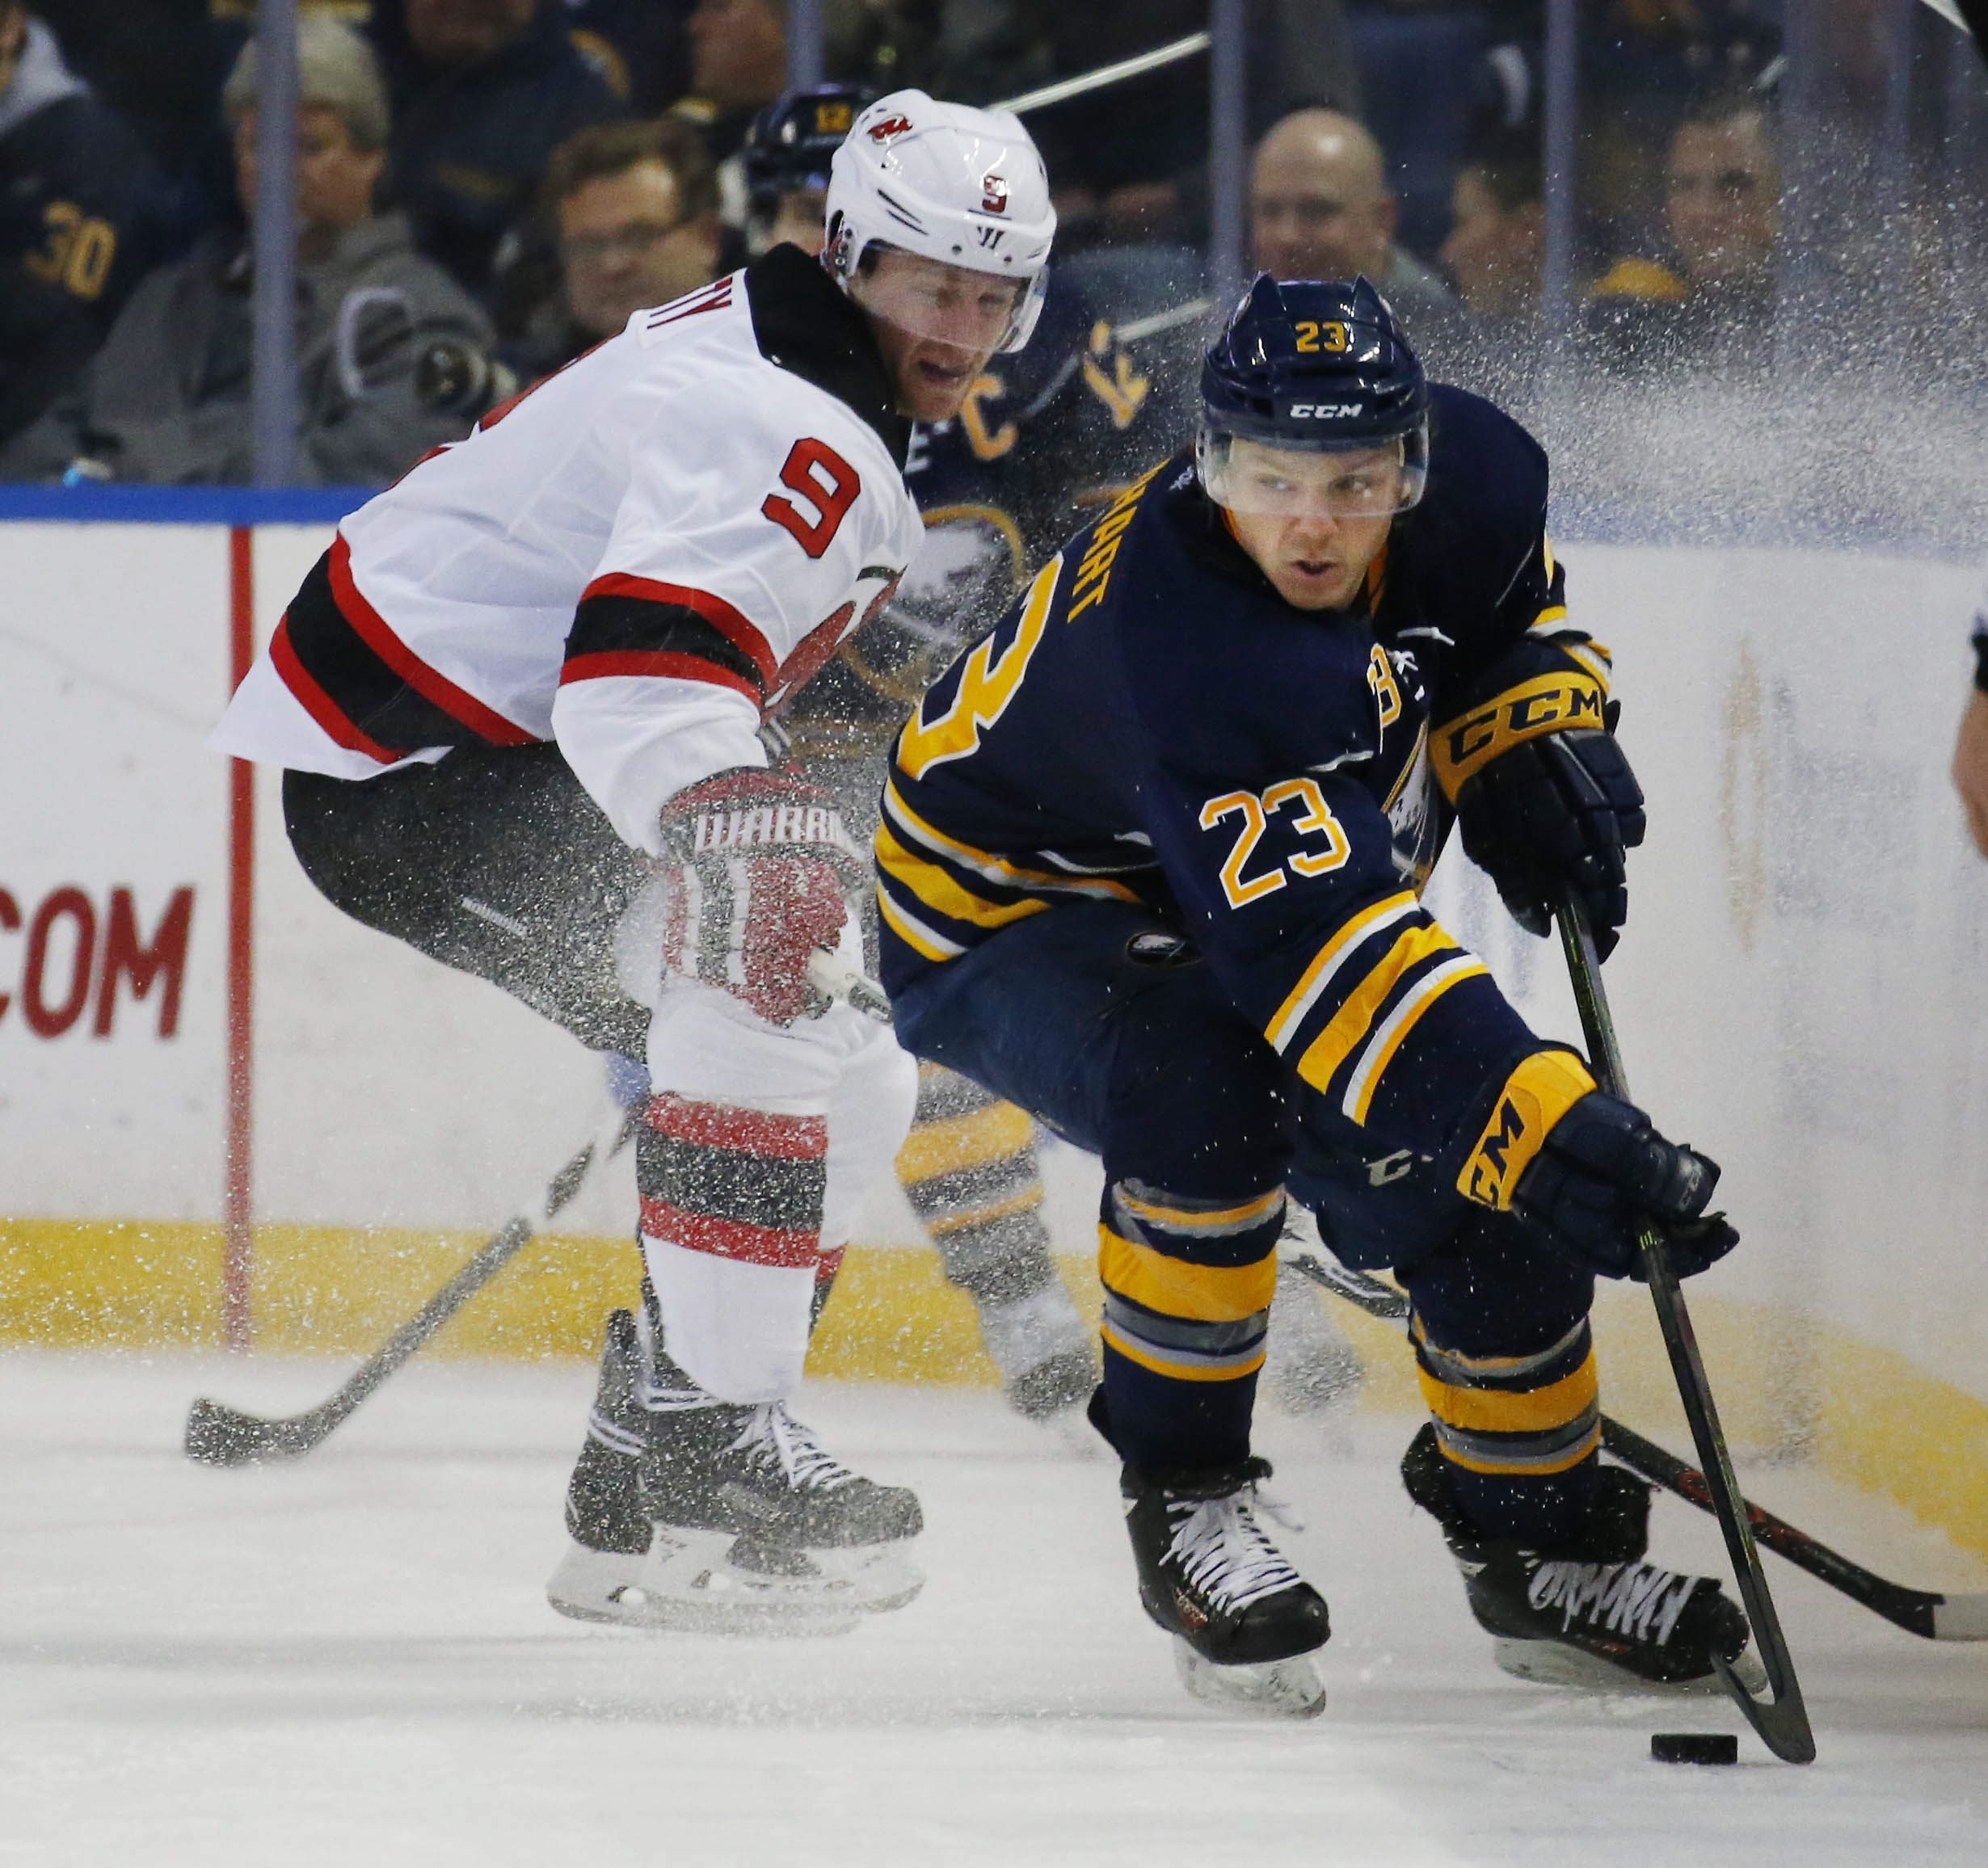 Buffalo's Sam Reinhart takes the puck from the Devils' Jiri Tlusty in the second period of the Sabres' 2-0 loss Tuesday.